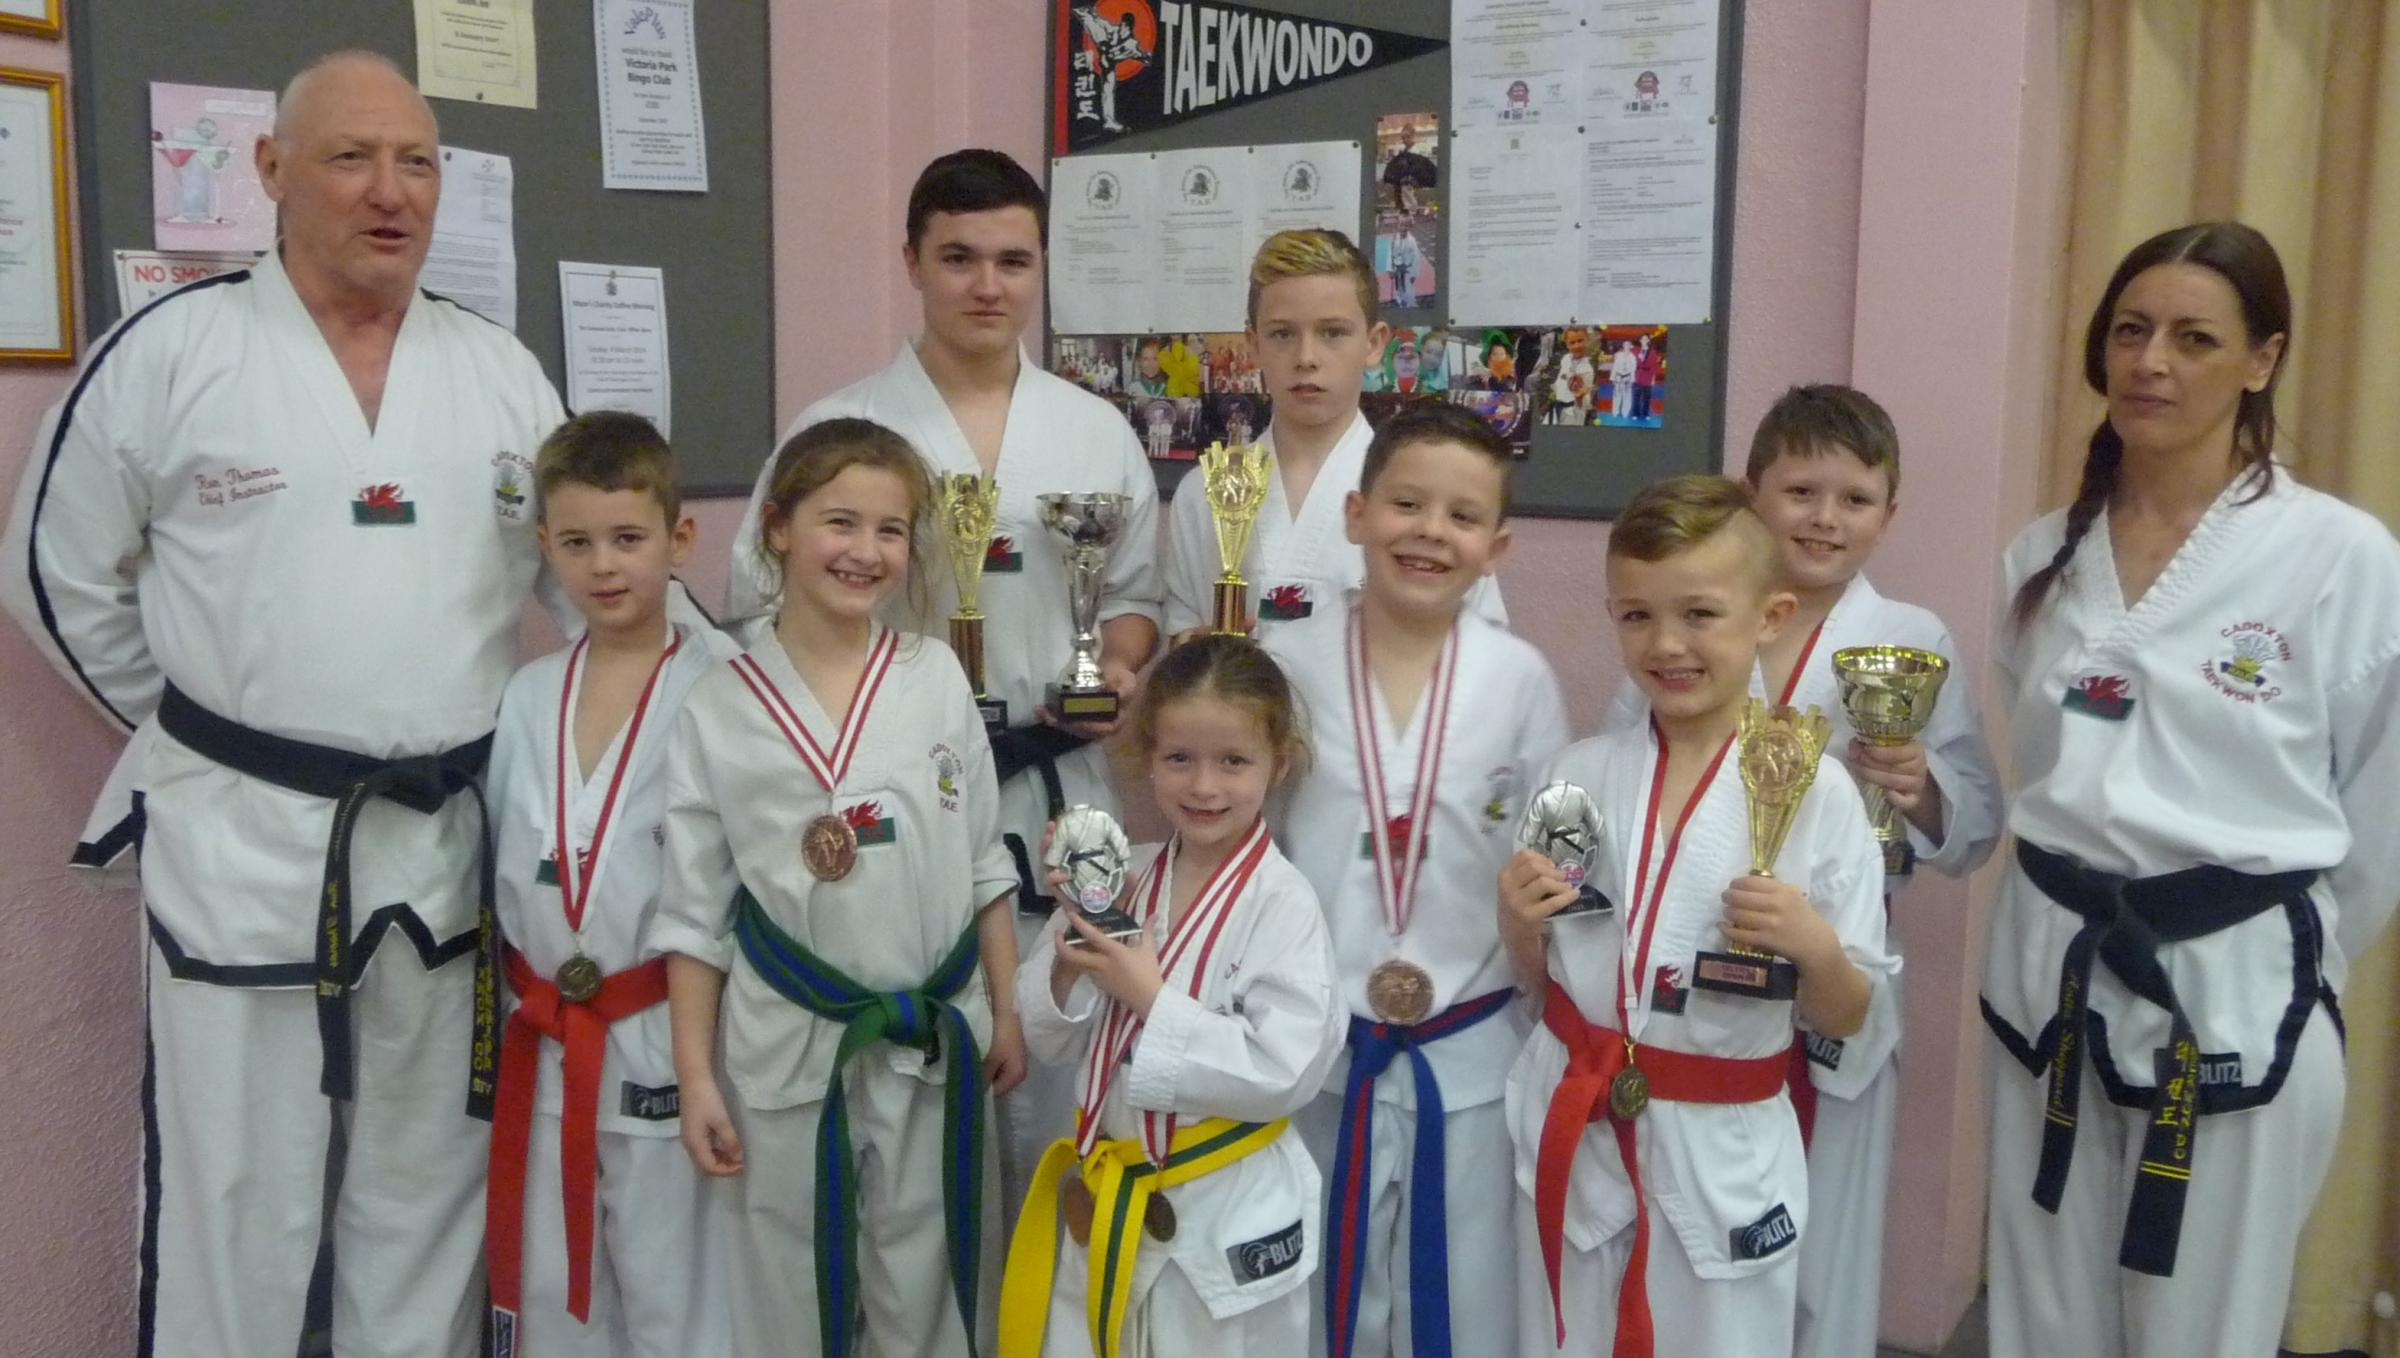 TOP STUDENTS: Cadoxton Schools of Taekwondo chief Ron Thomas (8th degree) with celebrating students - Bradley Halford, Thomas Haysham, Jake Quigley, Jessie Blackley, Maddison Allen, Joel Wells, Cian Allen and Cody Jacobsen.